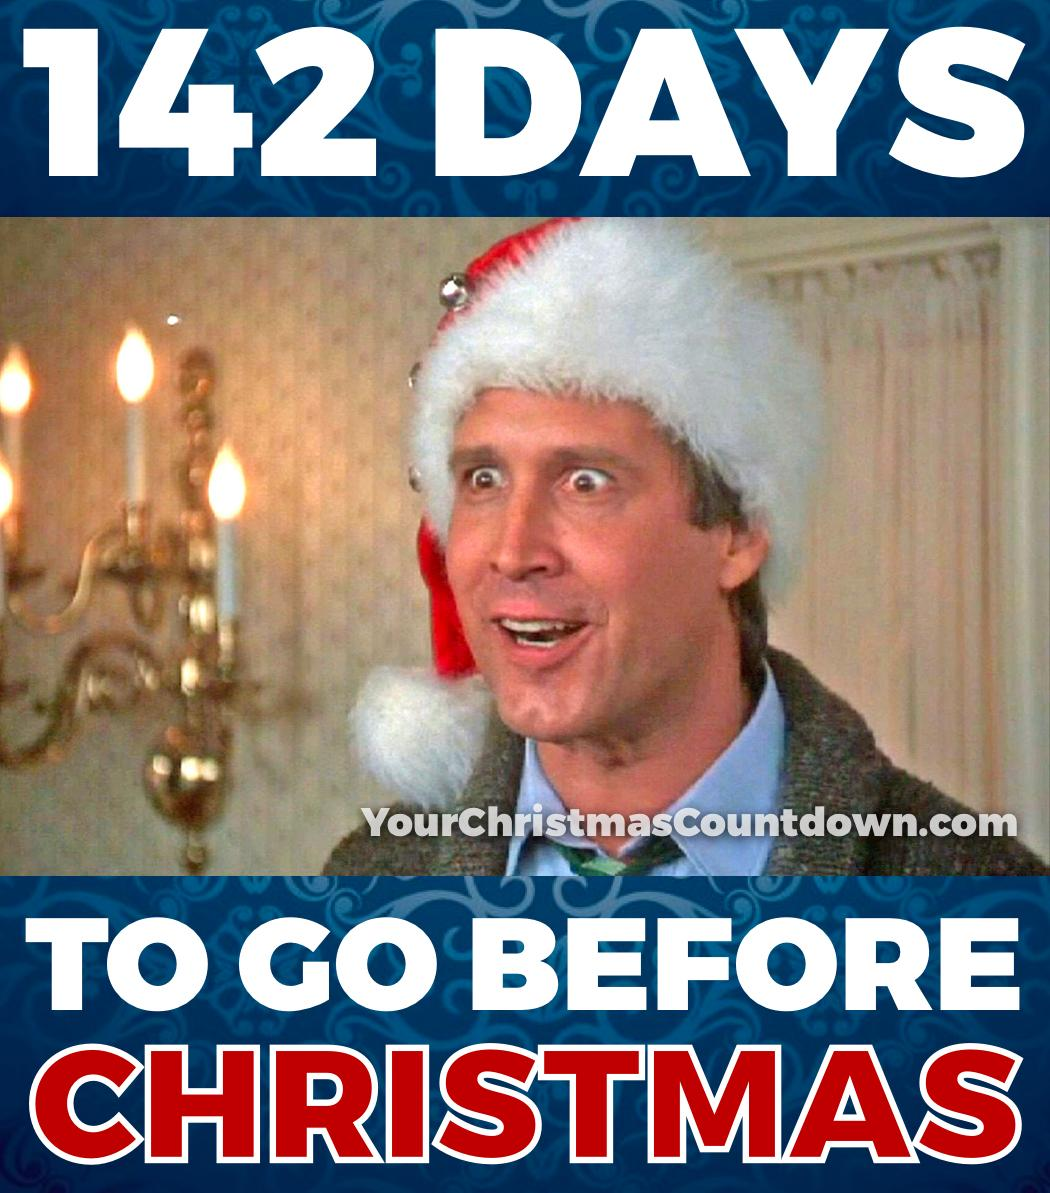 Countdown To Christmas Meme.Your Christmas Countdown On Twitter 142 Days Until